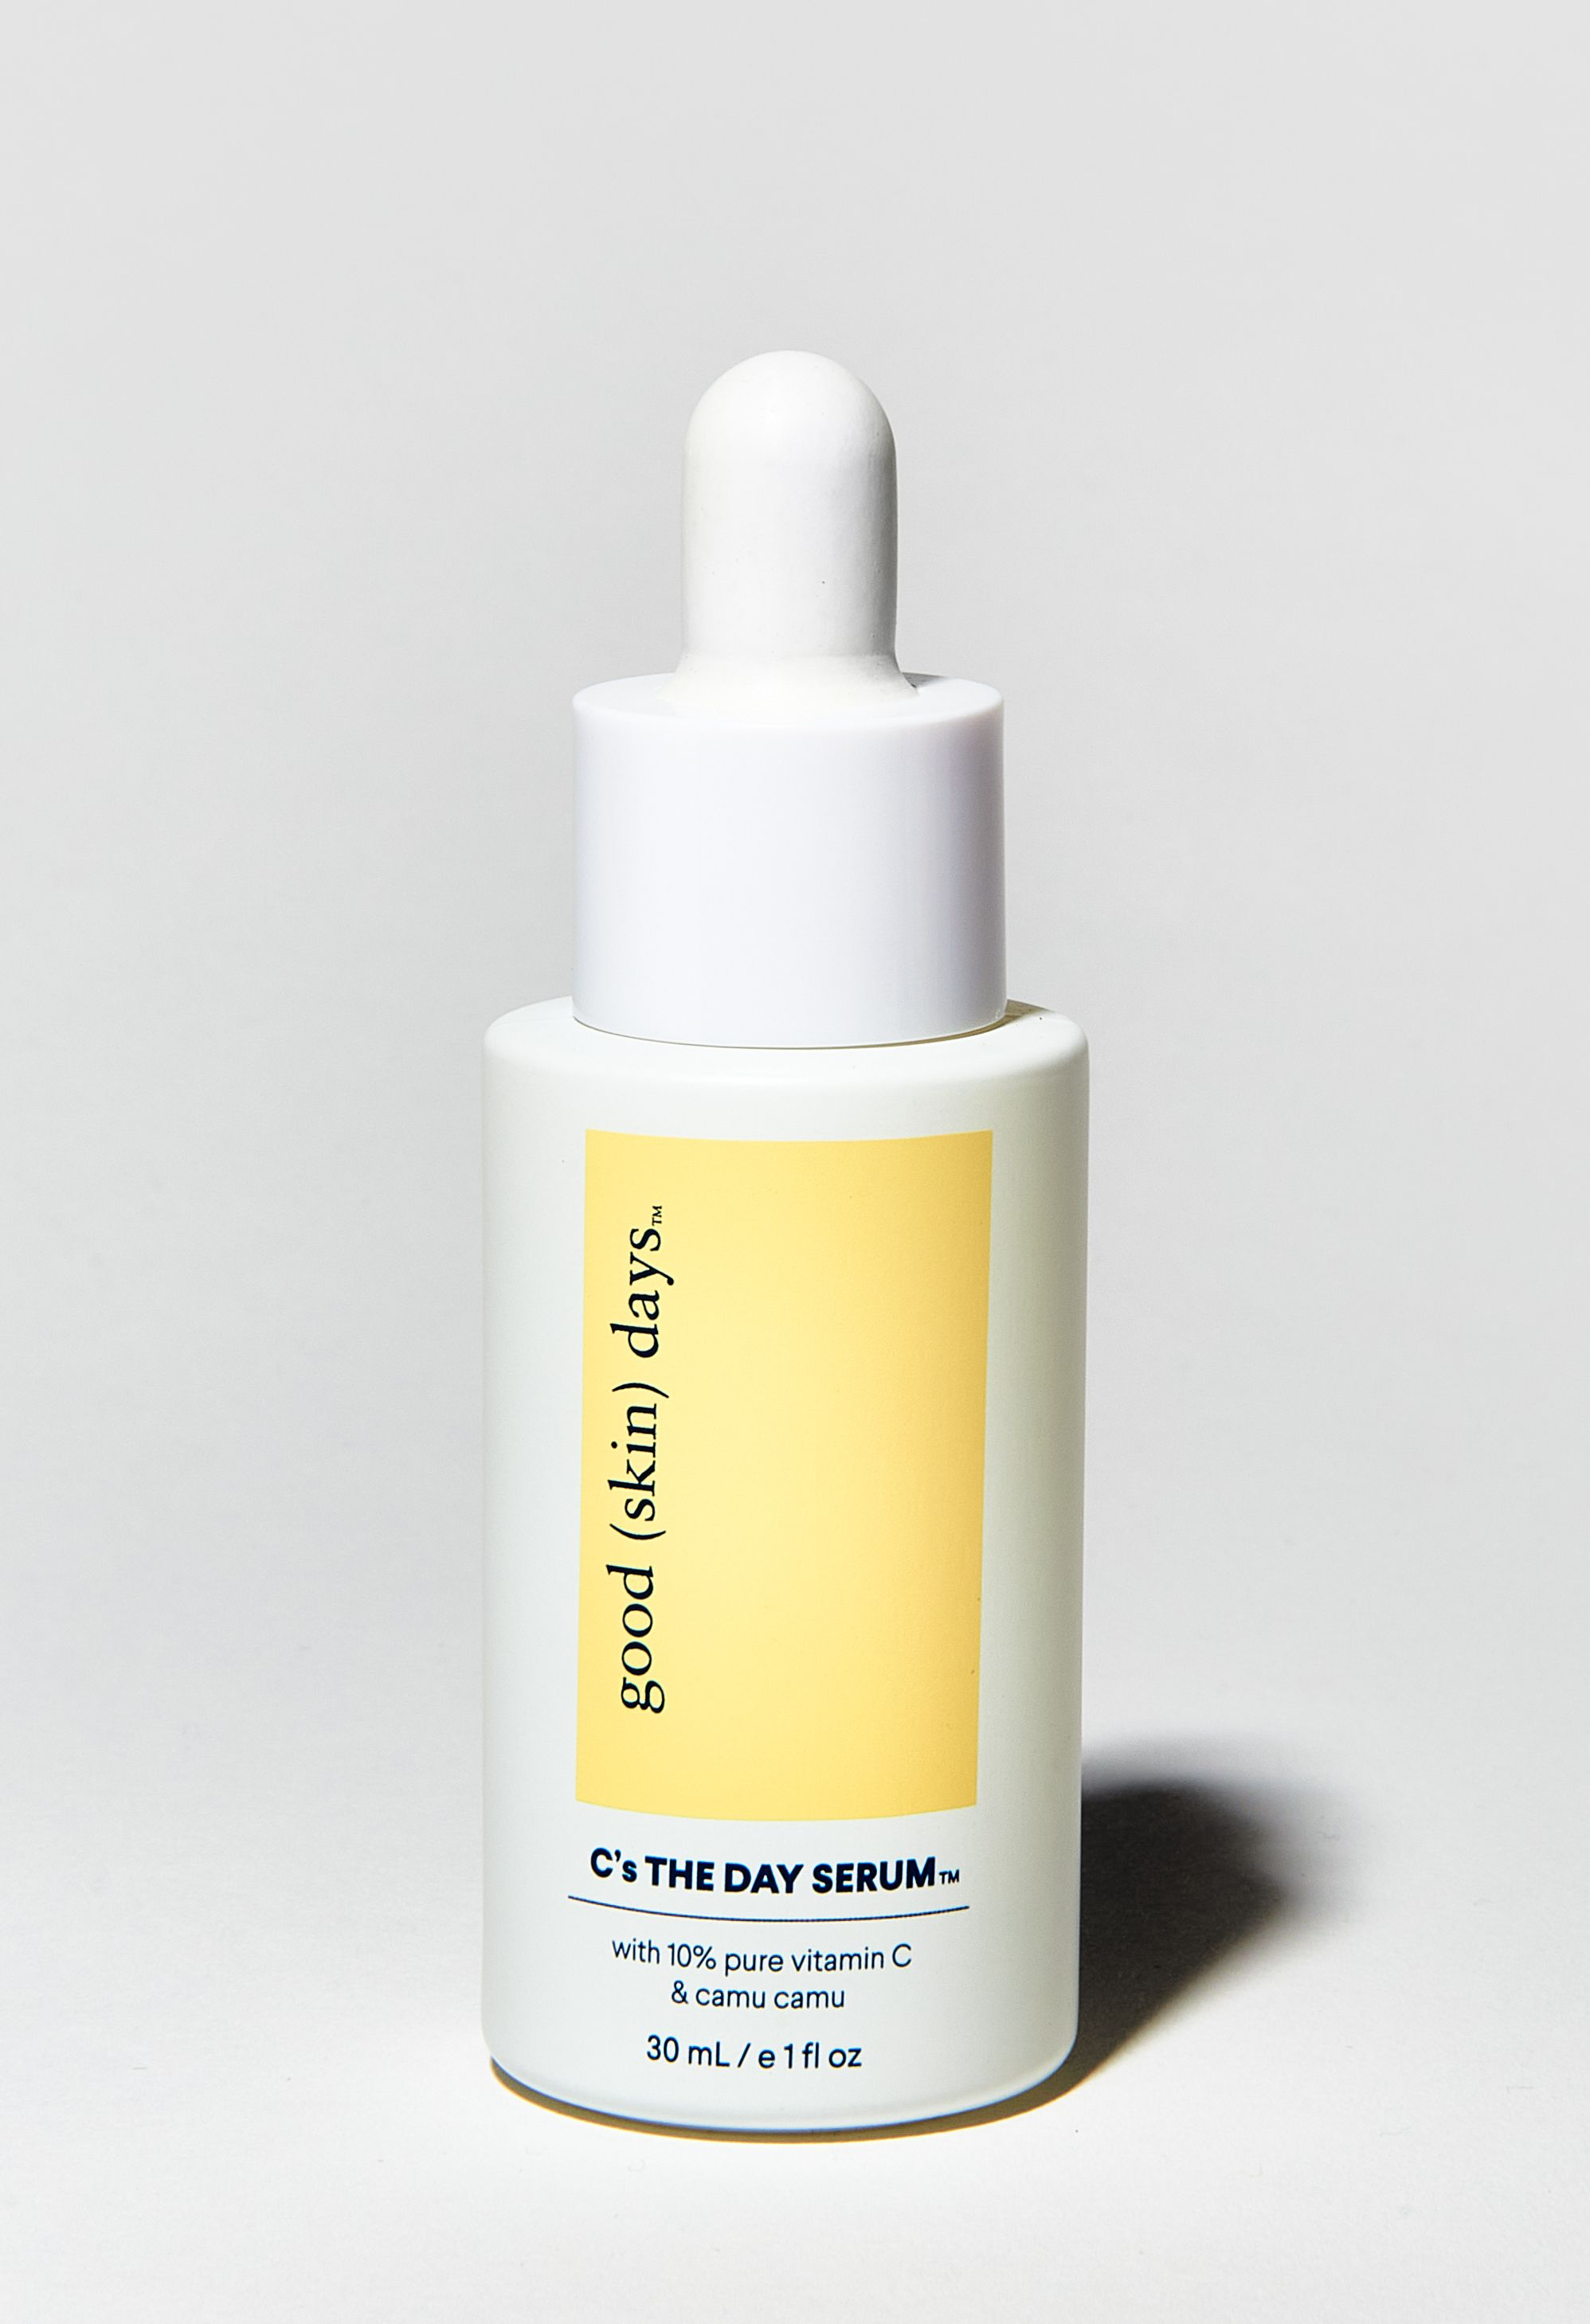 C S The Day Serum Skin Care Packaging Beauty Skin Care Routine Good Skin